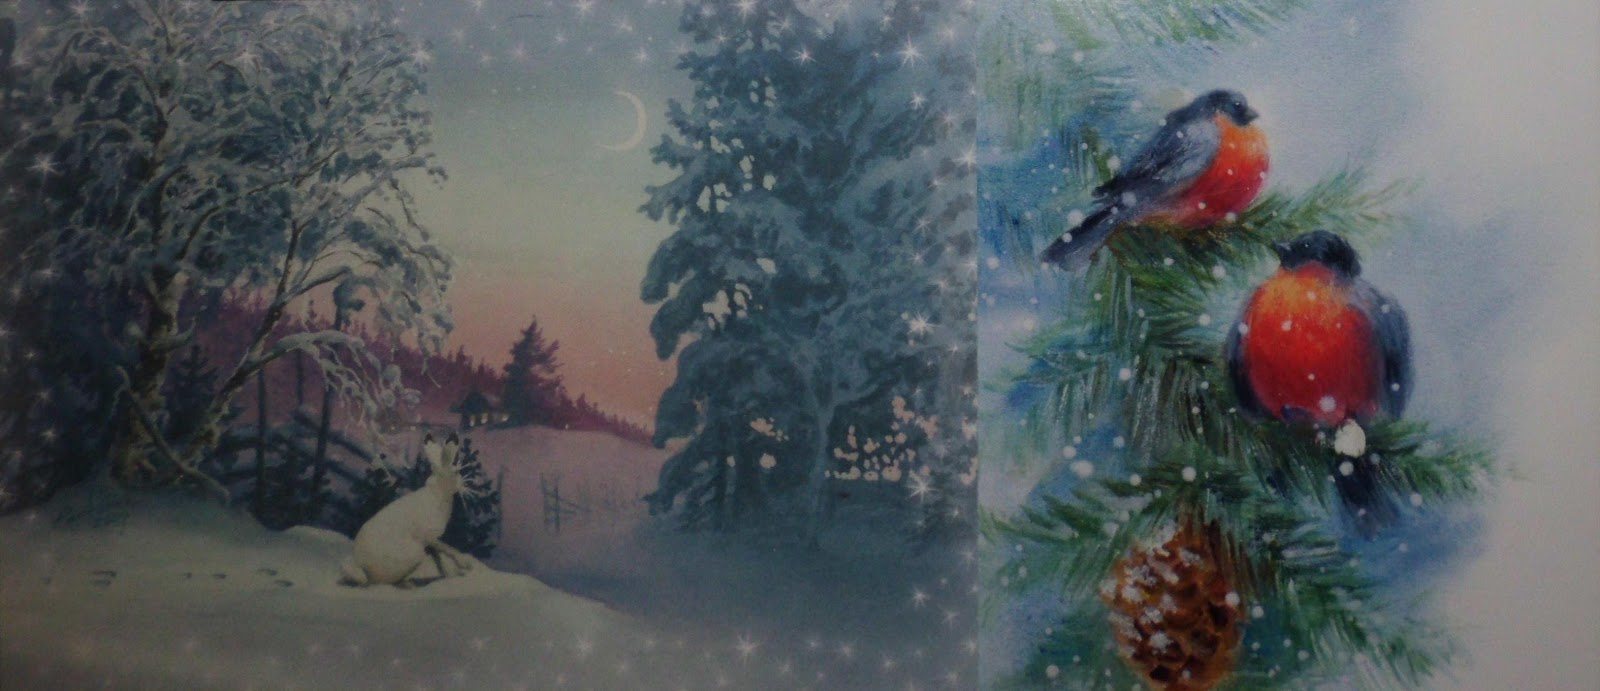 Foreigner in finland christmas cards overview i would like to present also a very original christmas card i got this year reproduction of work of the finnish artist reetta isotupa siltanen m4hsunfo